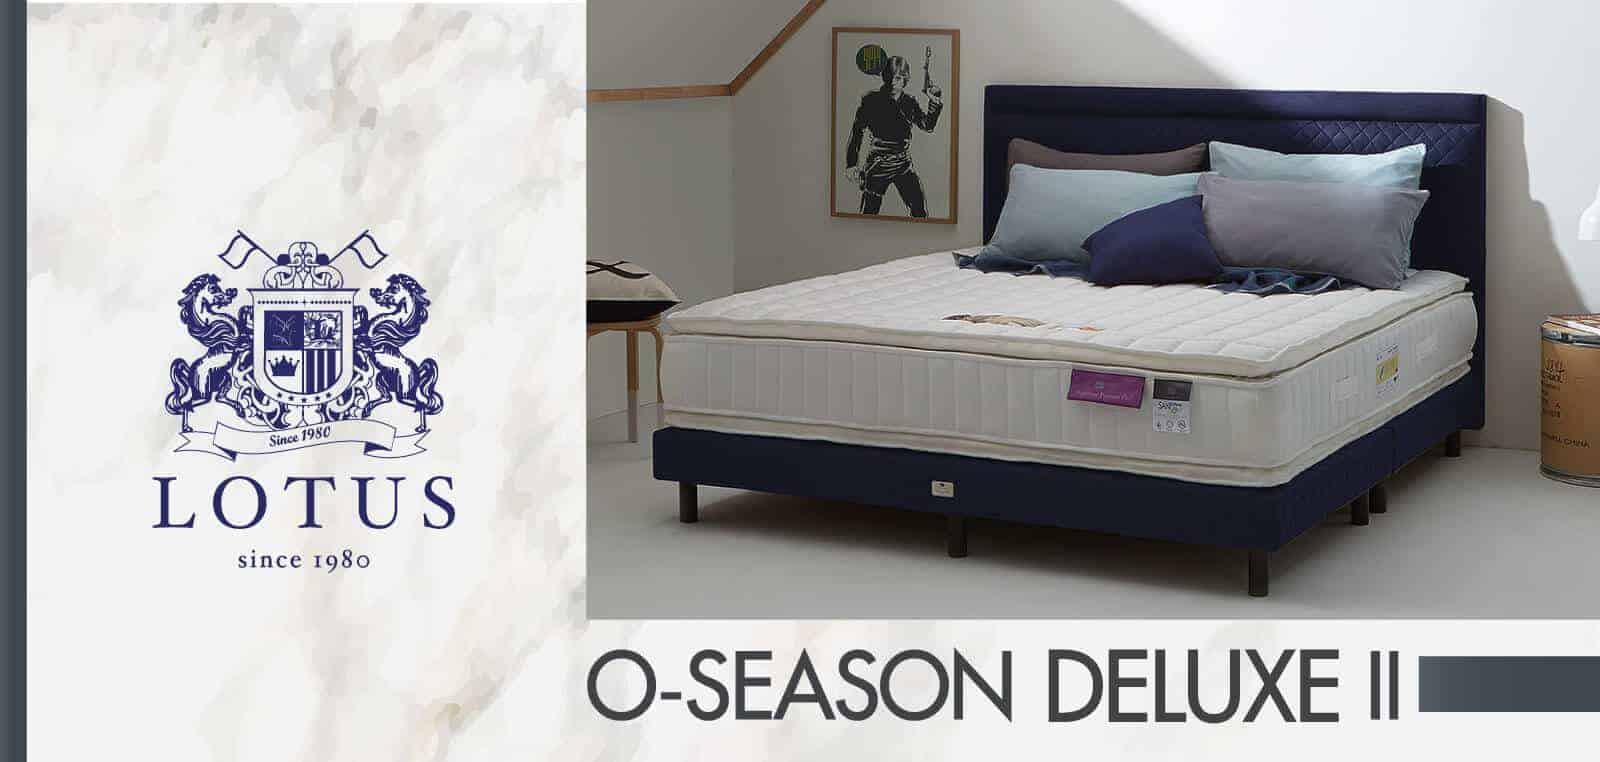 Lotus Mattress - O-Season Deluxe II 9